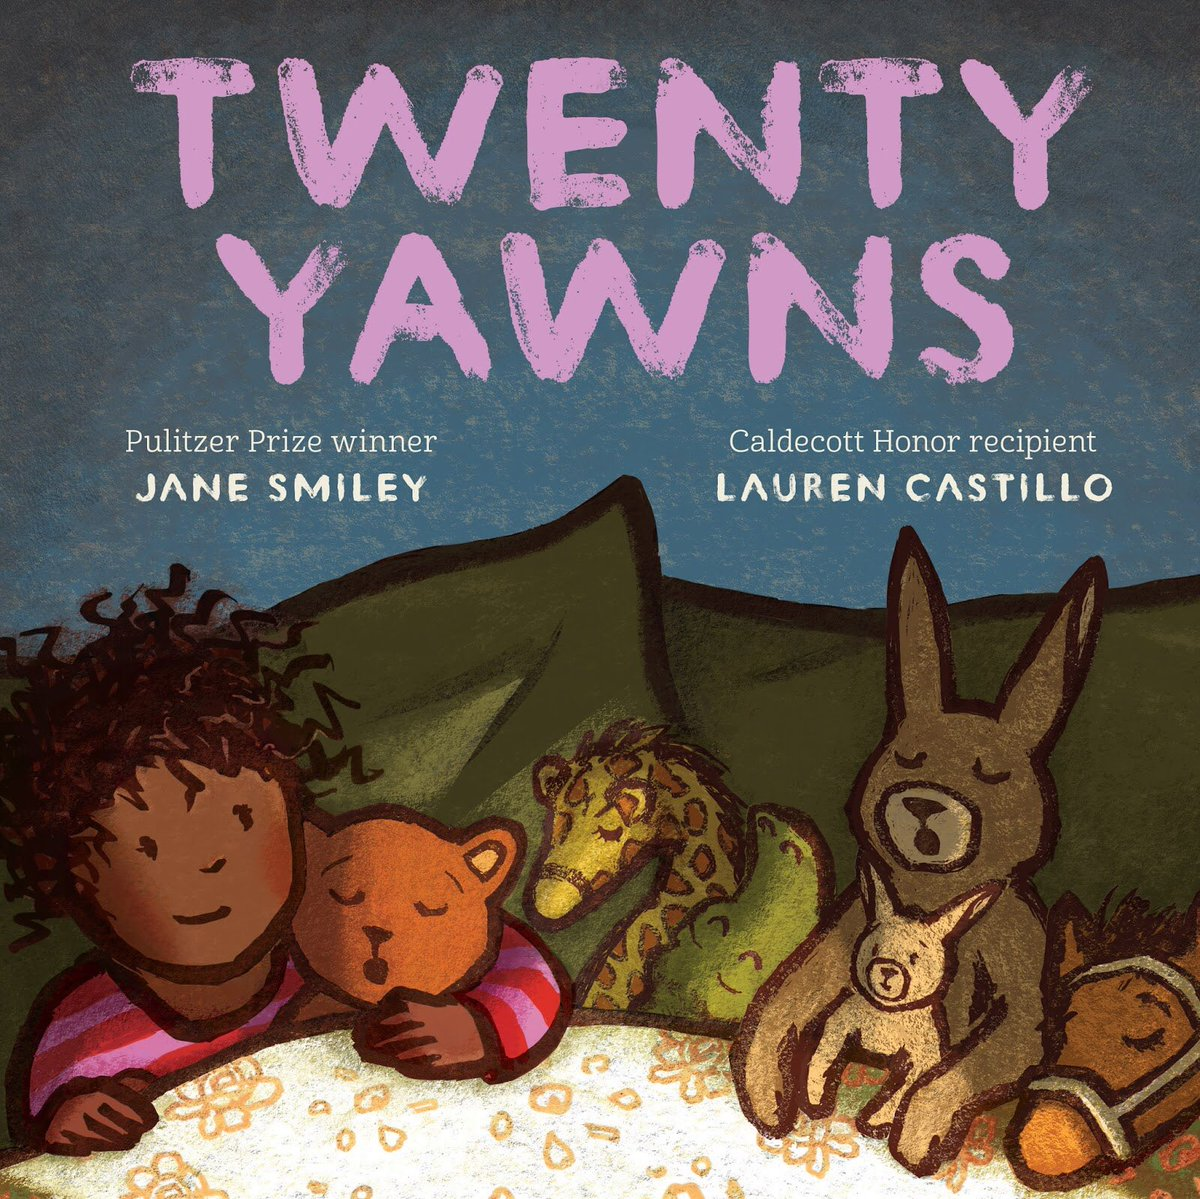 I'm giving away a copy of Twenty Yawns. RT before midnight to enter the drawing. https://t.co/fHE3MHotn7 https://t.co/5Mqg3soK6o